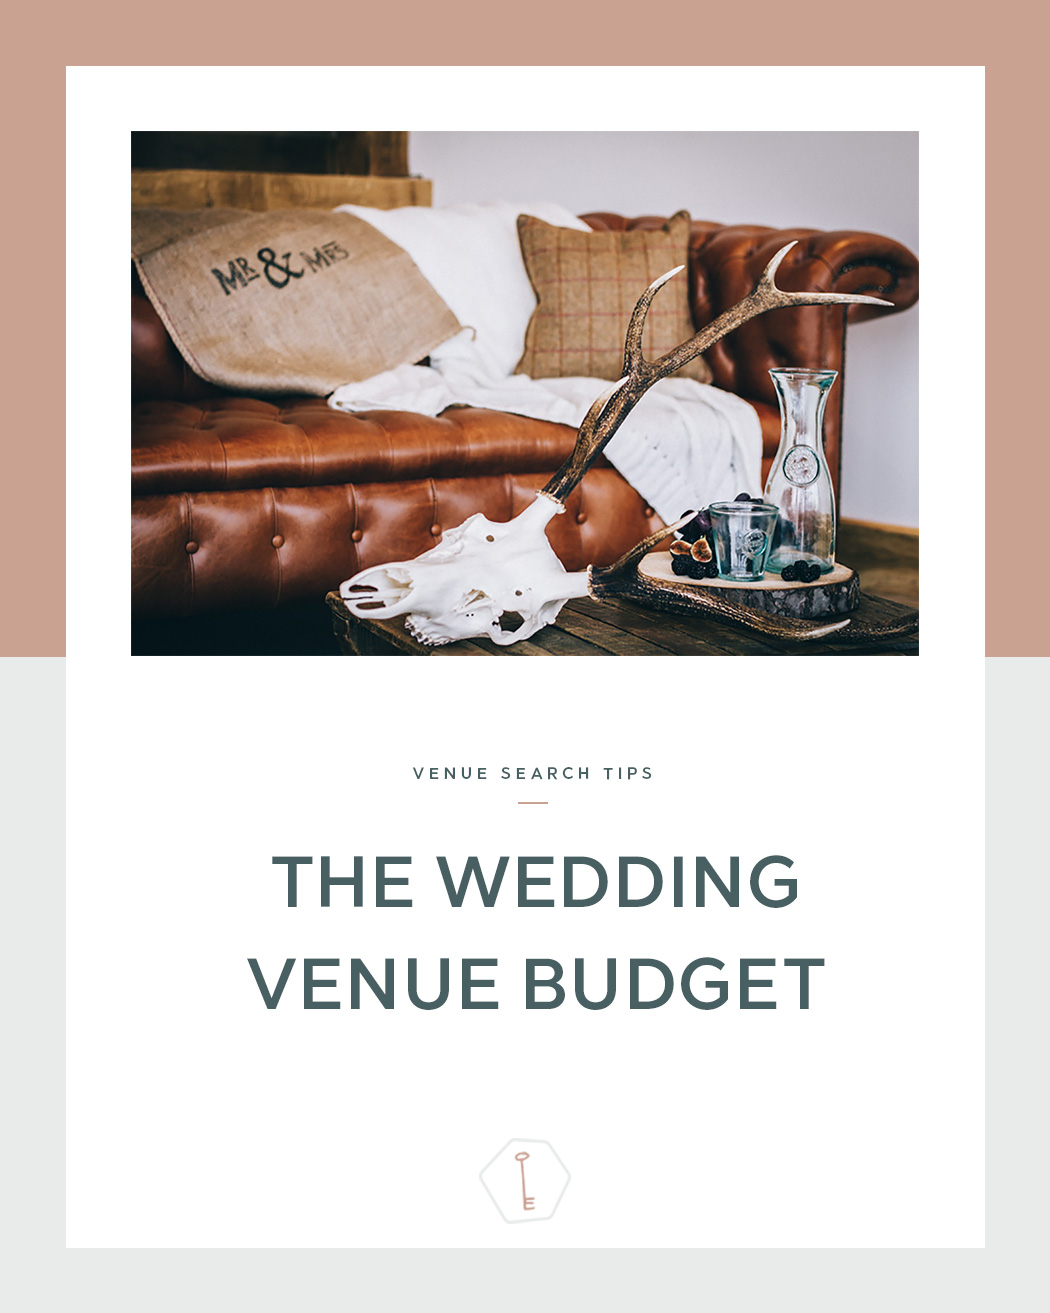 the-wedding-venue-budget-poster